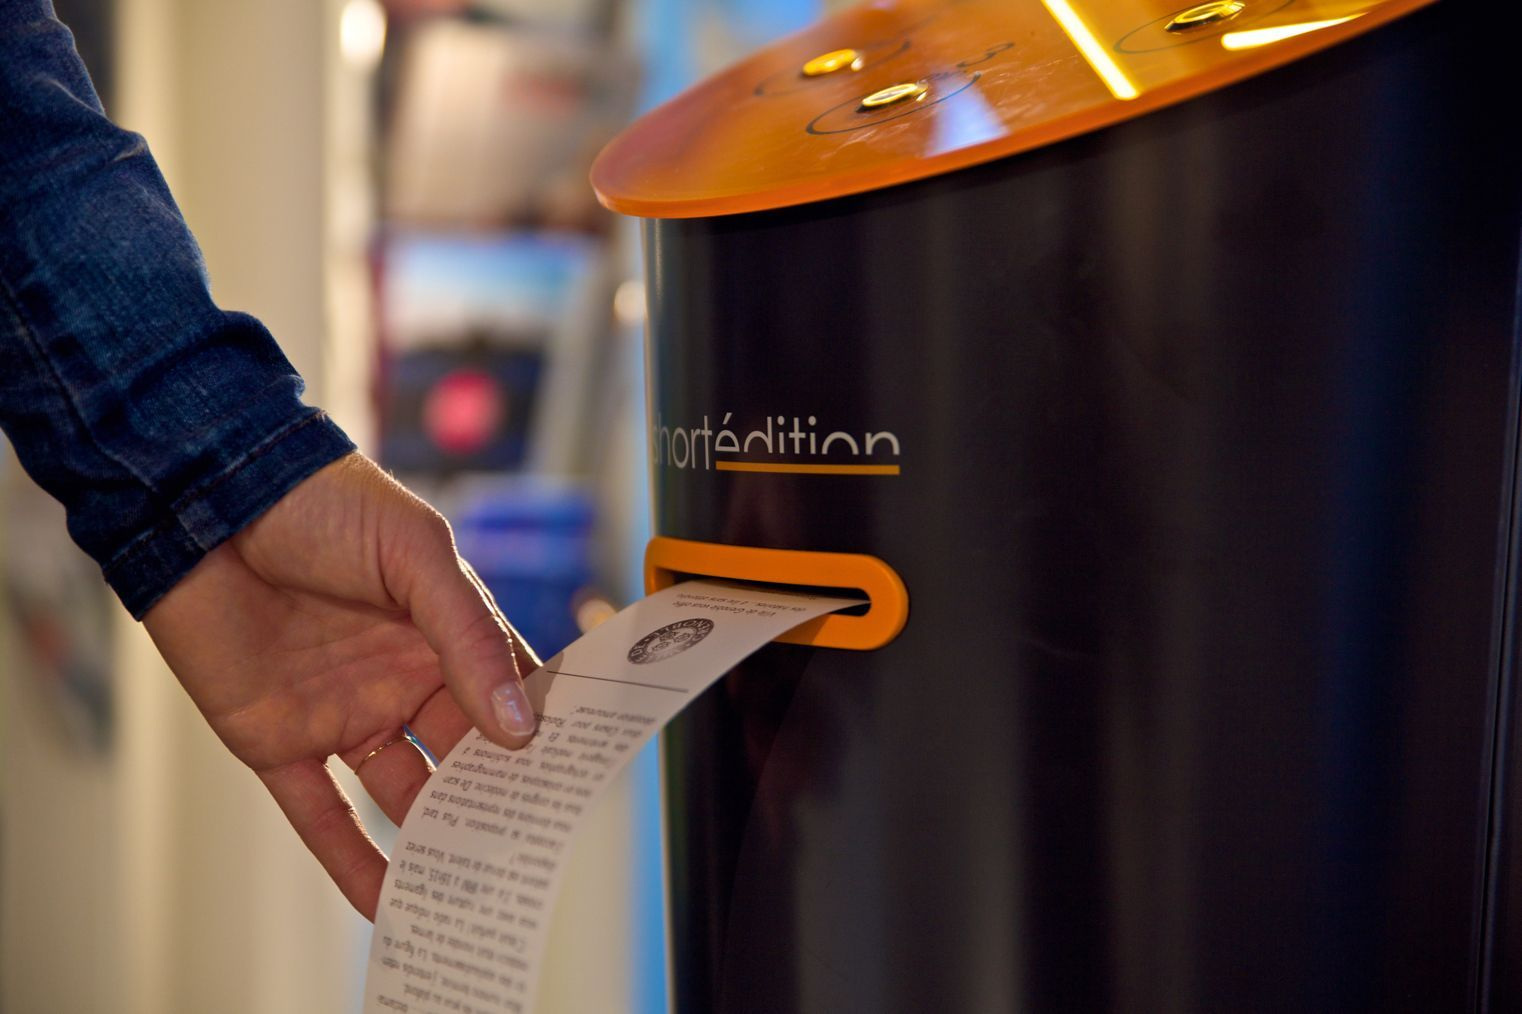 | French publisher Short Édition has now invented vending machines that print out short fiction instead of dispensing sweets and soft drinks